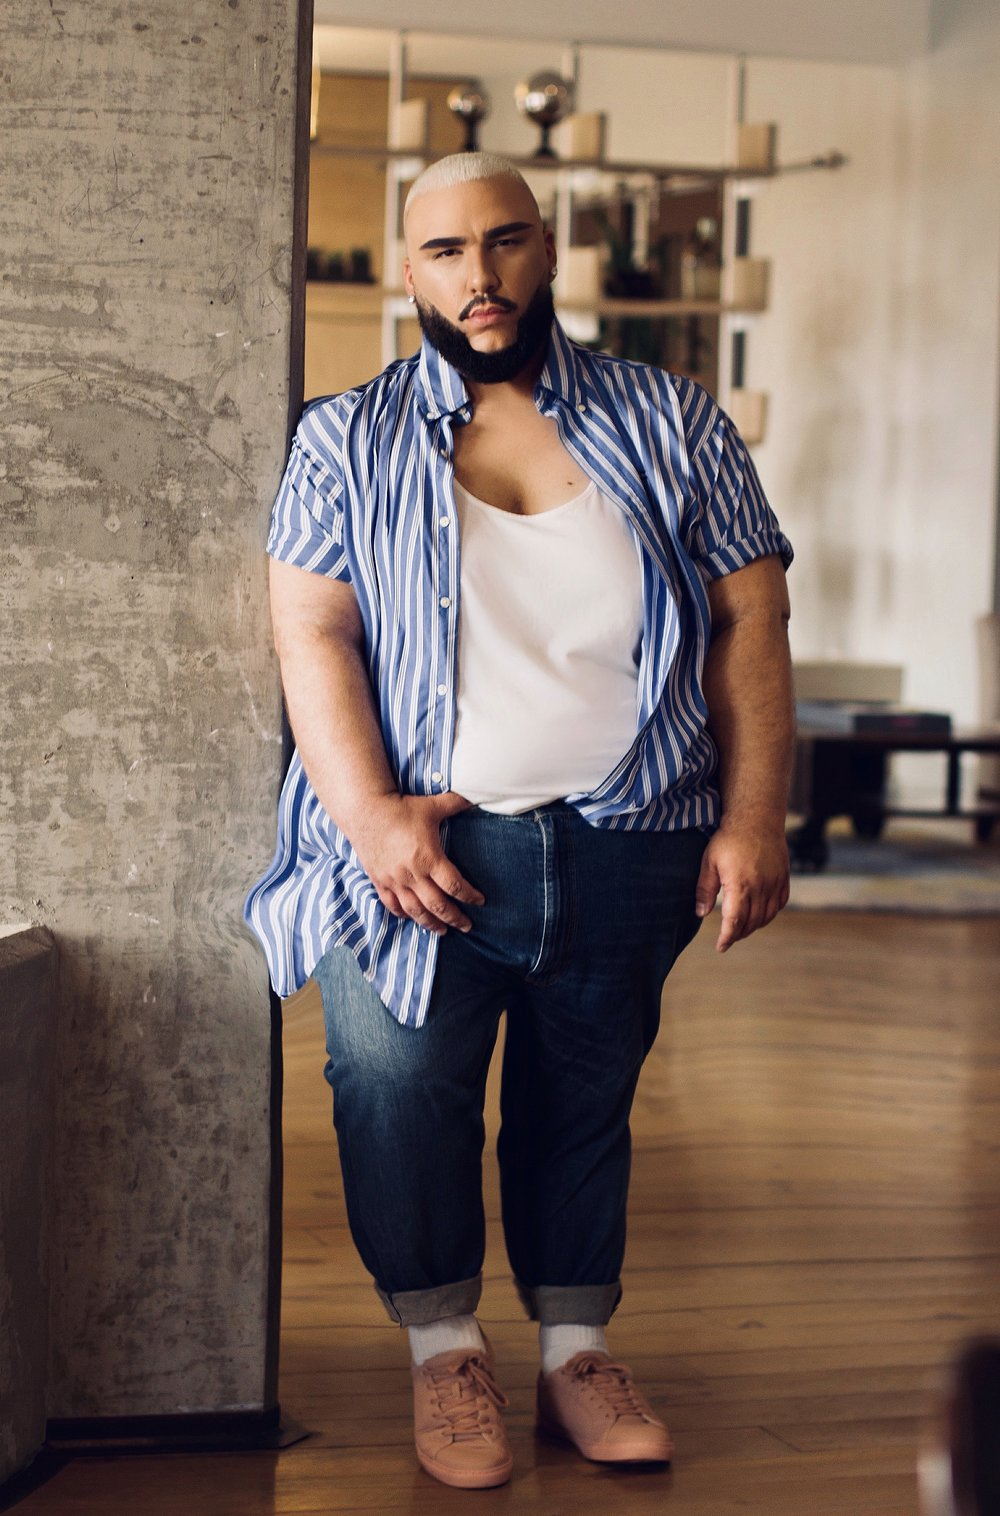 a5560bc073440 Plus size Big and tall denim could be tricky to find for people of size  especially ones that fit us great. My favorite have been Levi s.